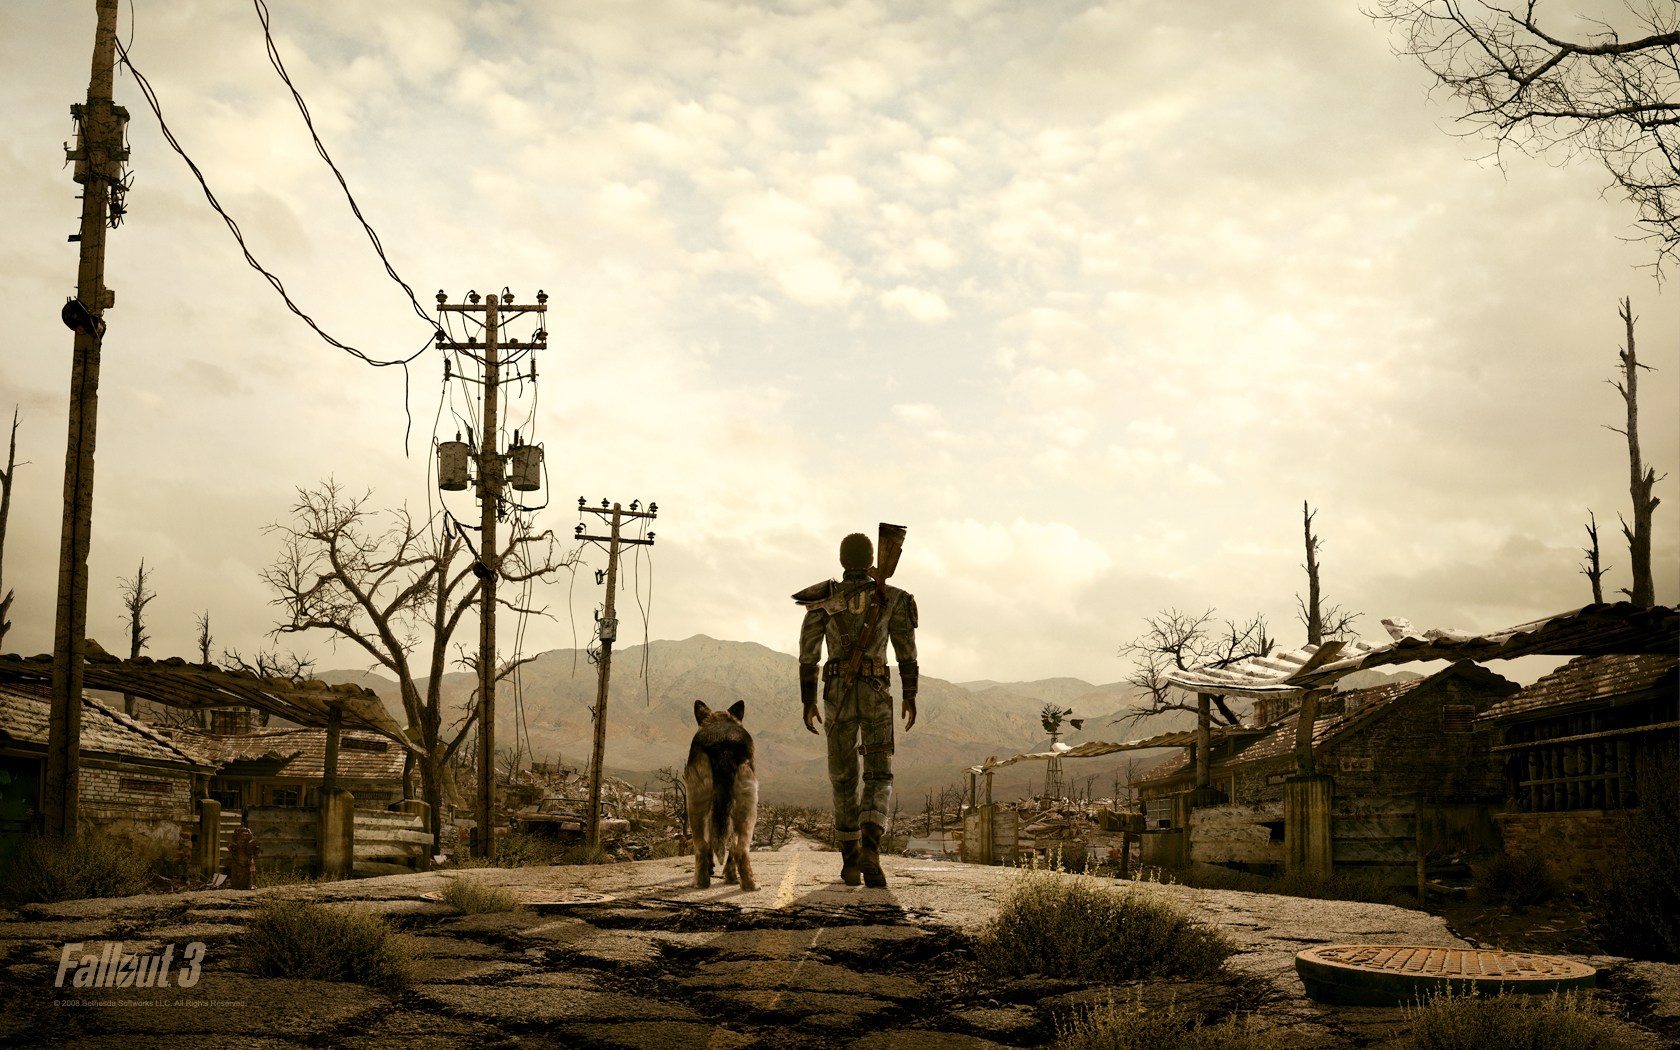 Fallout TV show trademark may not mean what you think it does